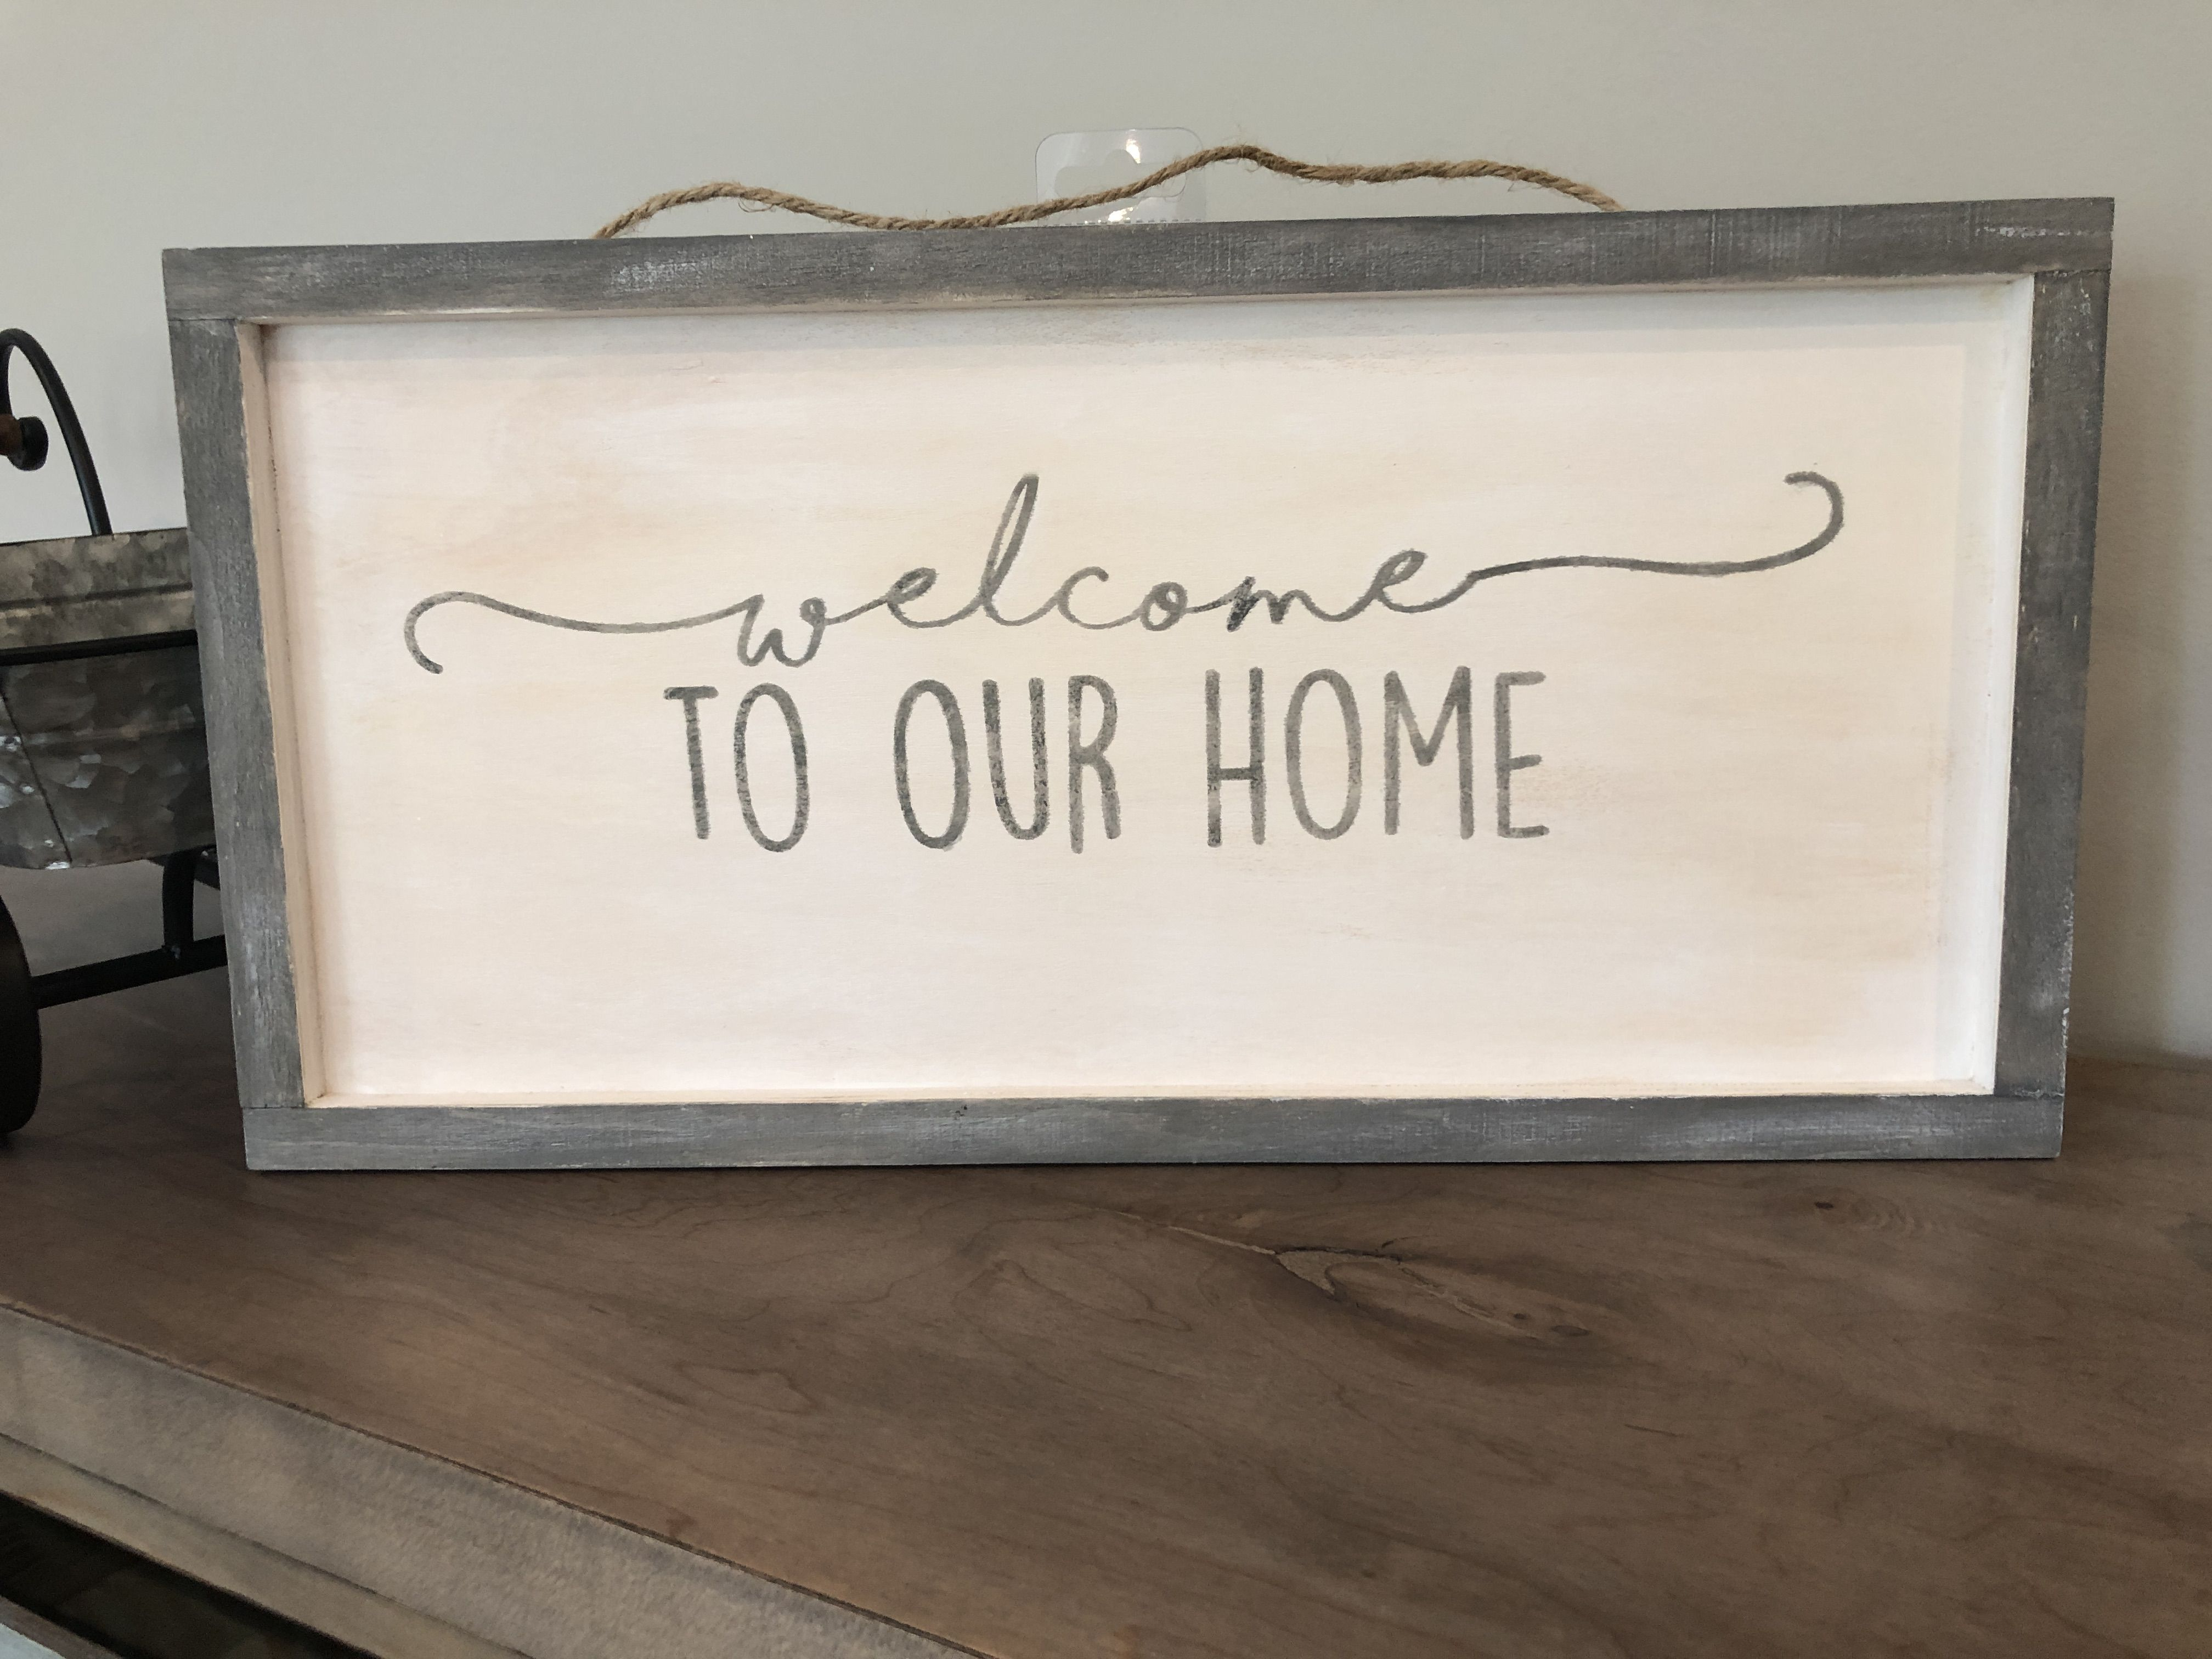 Lettere Da Appendere Al Muro welcome to our home, farmhouse style, framed sign, painted